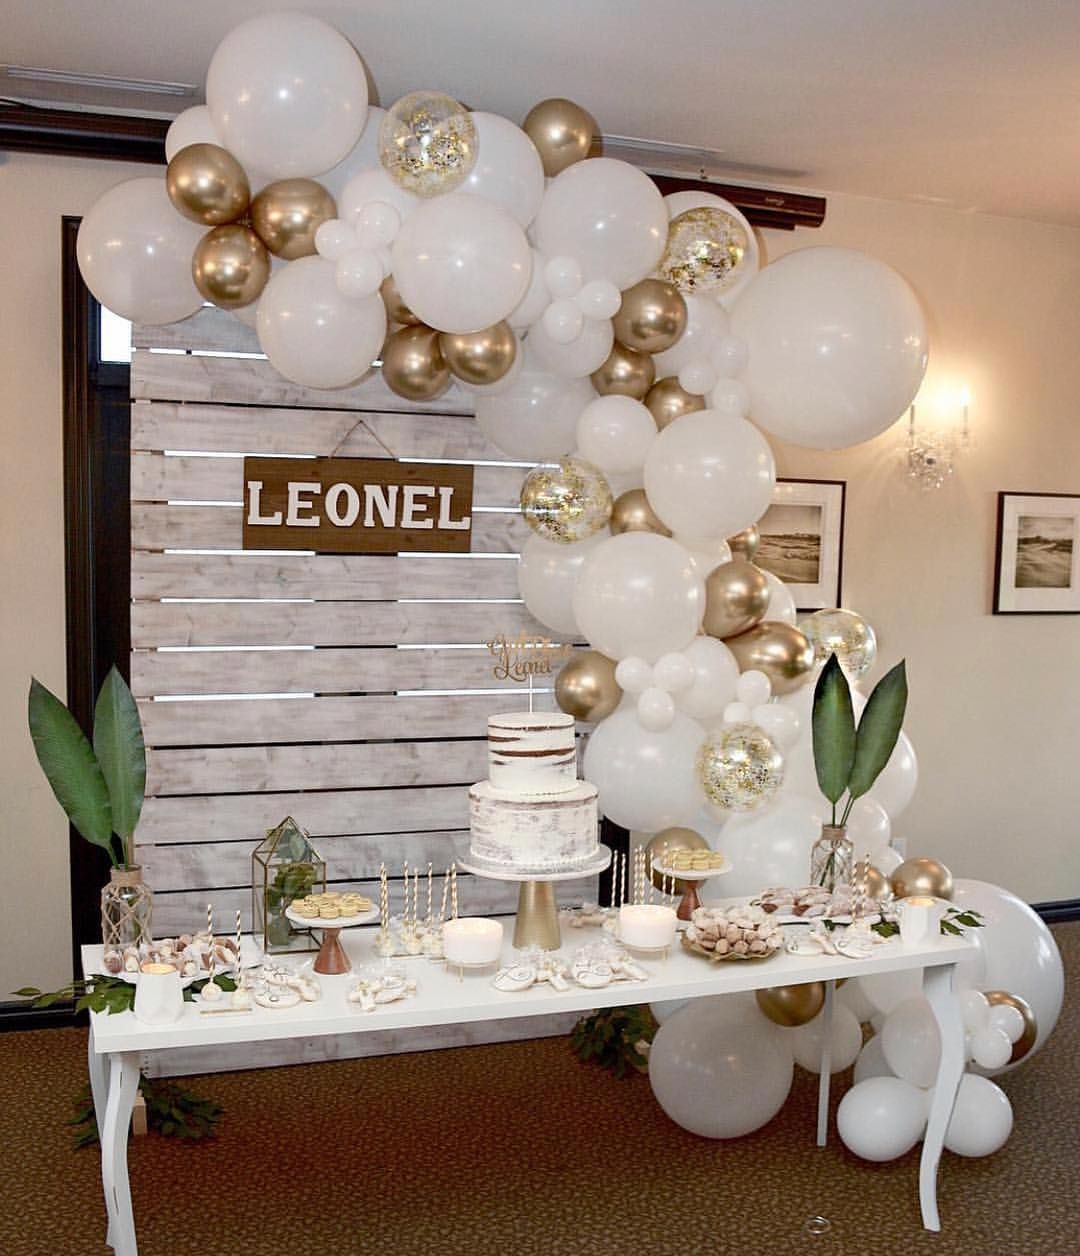 Home Party Decoration: For The ️of Parties в Instagram: «Beautiful In White And